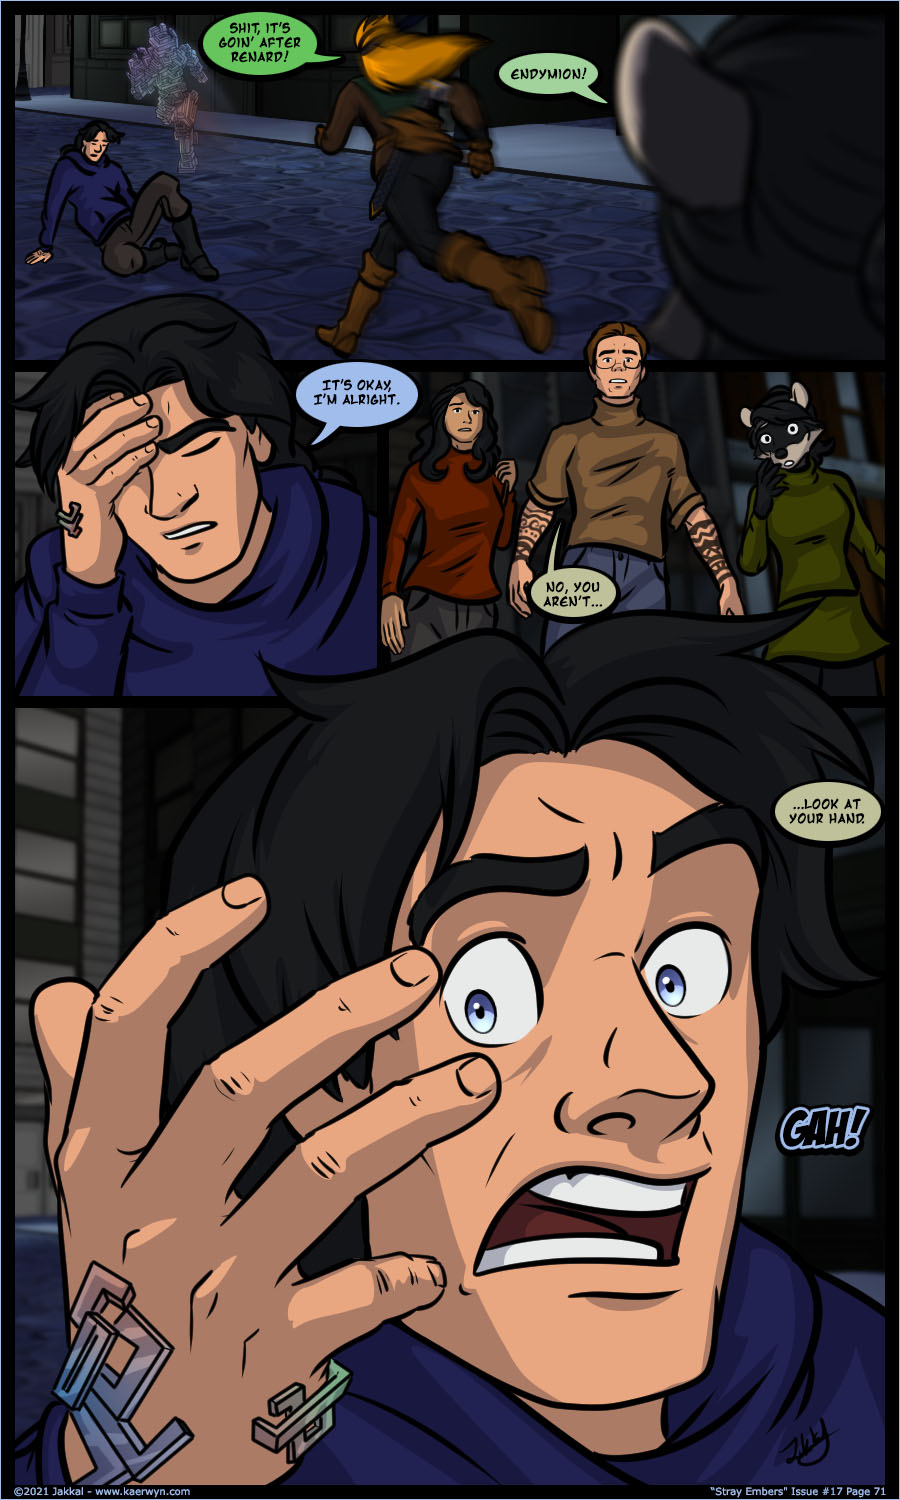 Issue 17 page 71